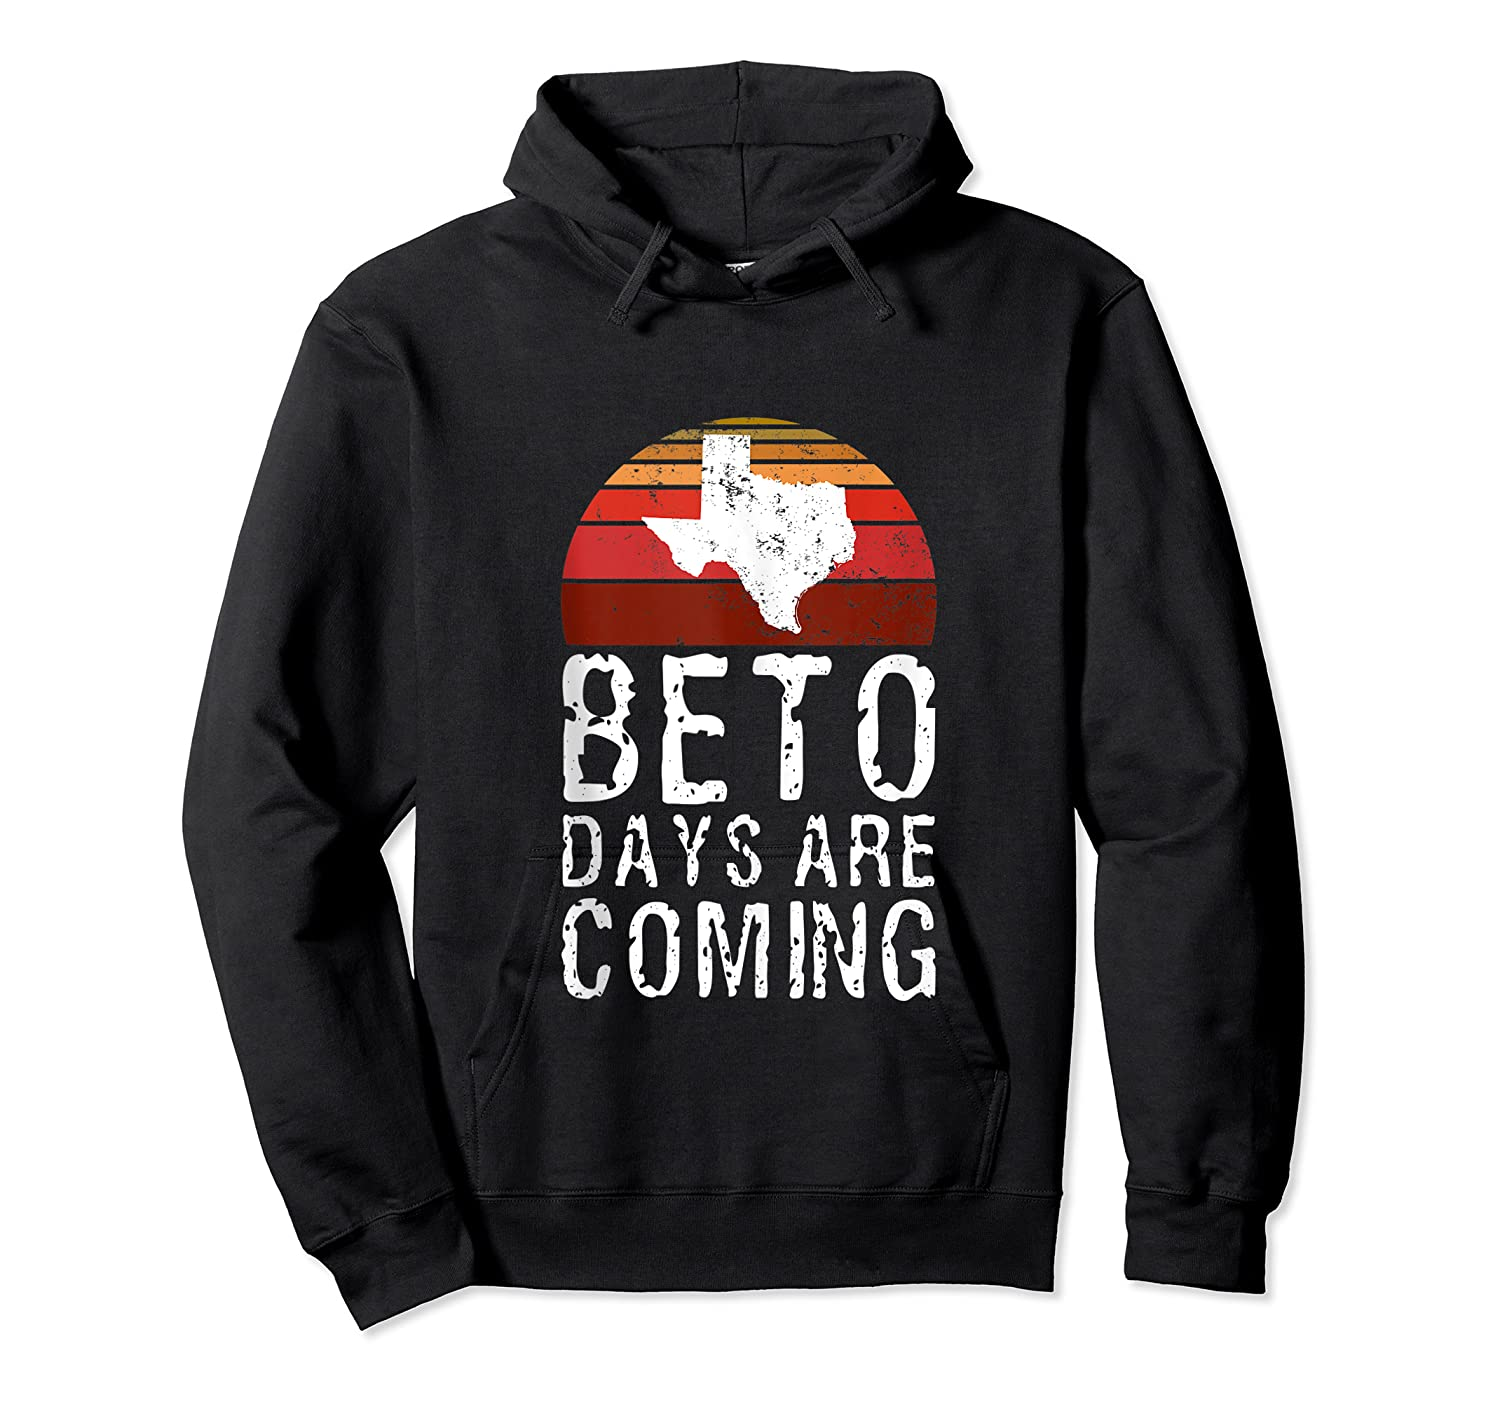 Beto Days Are Coming Funny Election Political Novelty Gift Tank Top Shirts Unisex Pullover Hoodie